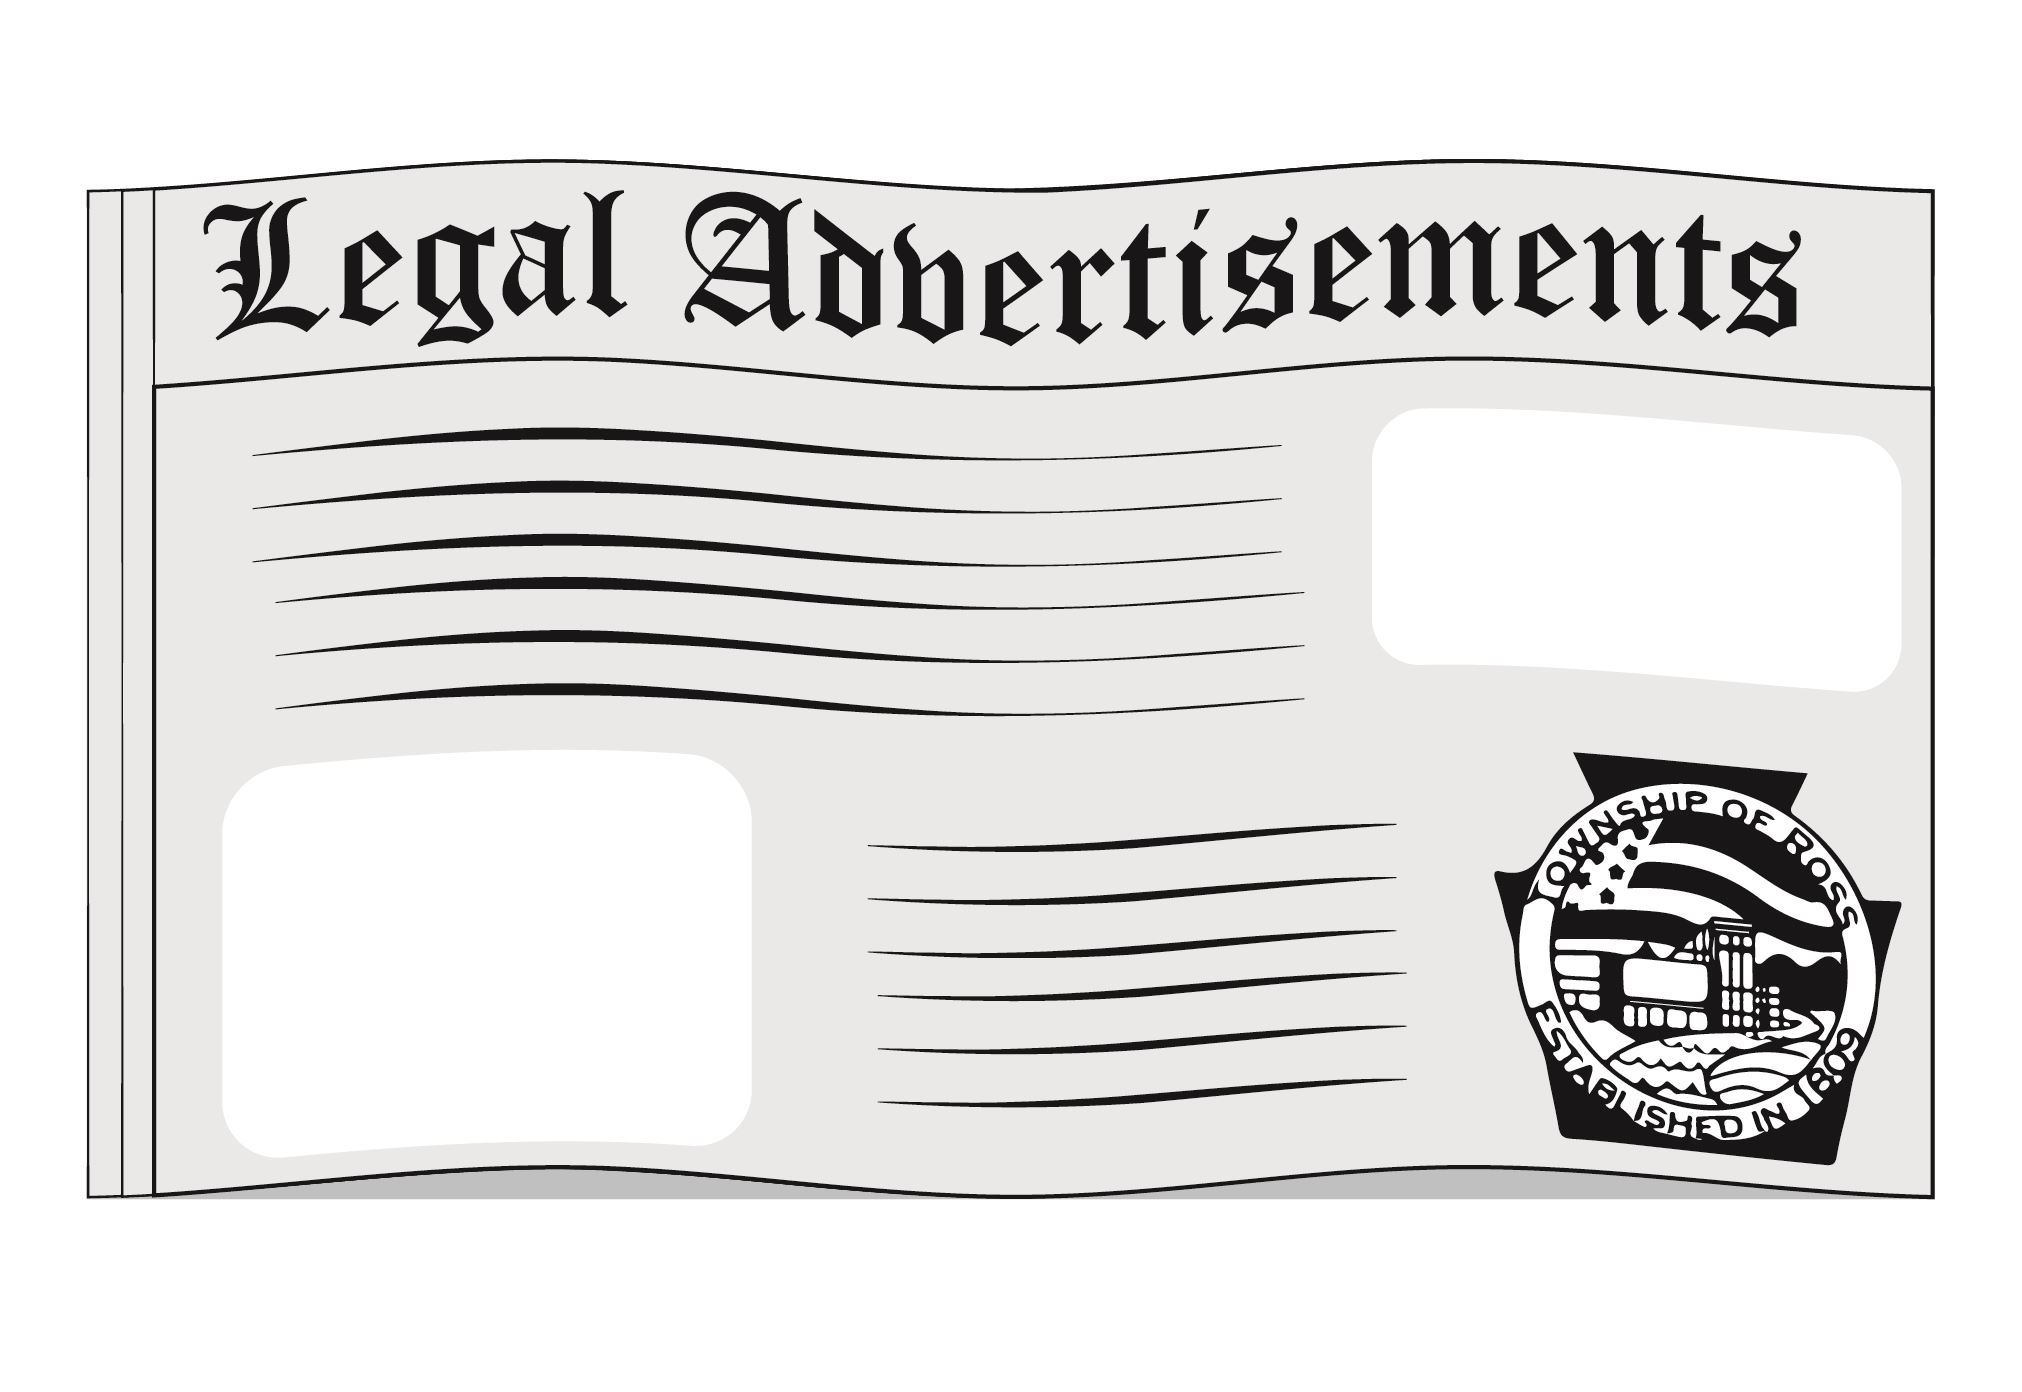 Legal Advertisement-02 - Copy